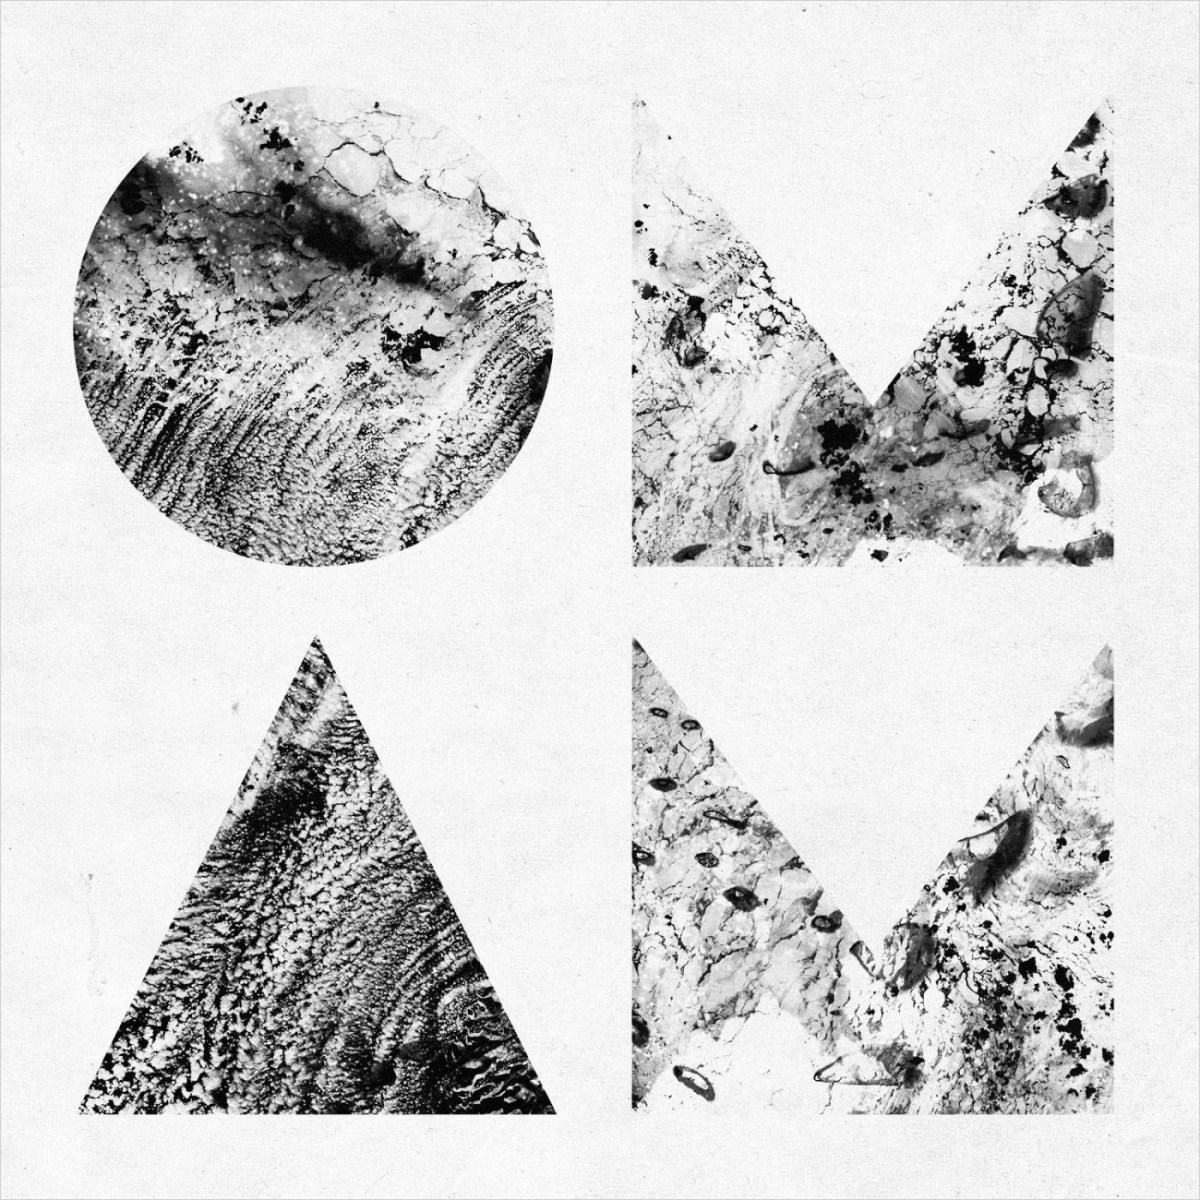 """Of Monsters And Men – """"Beneath the skin"""""""